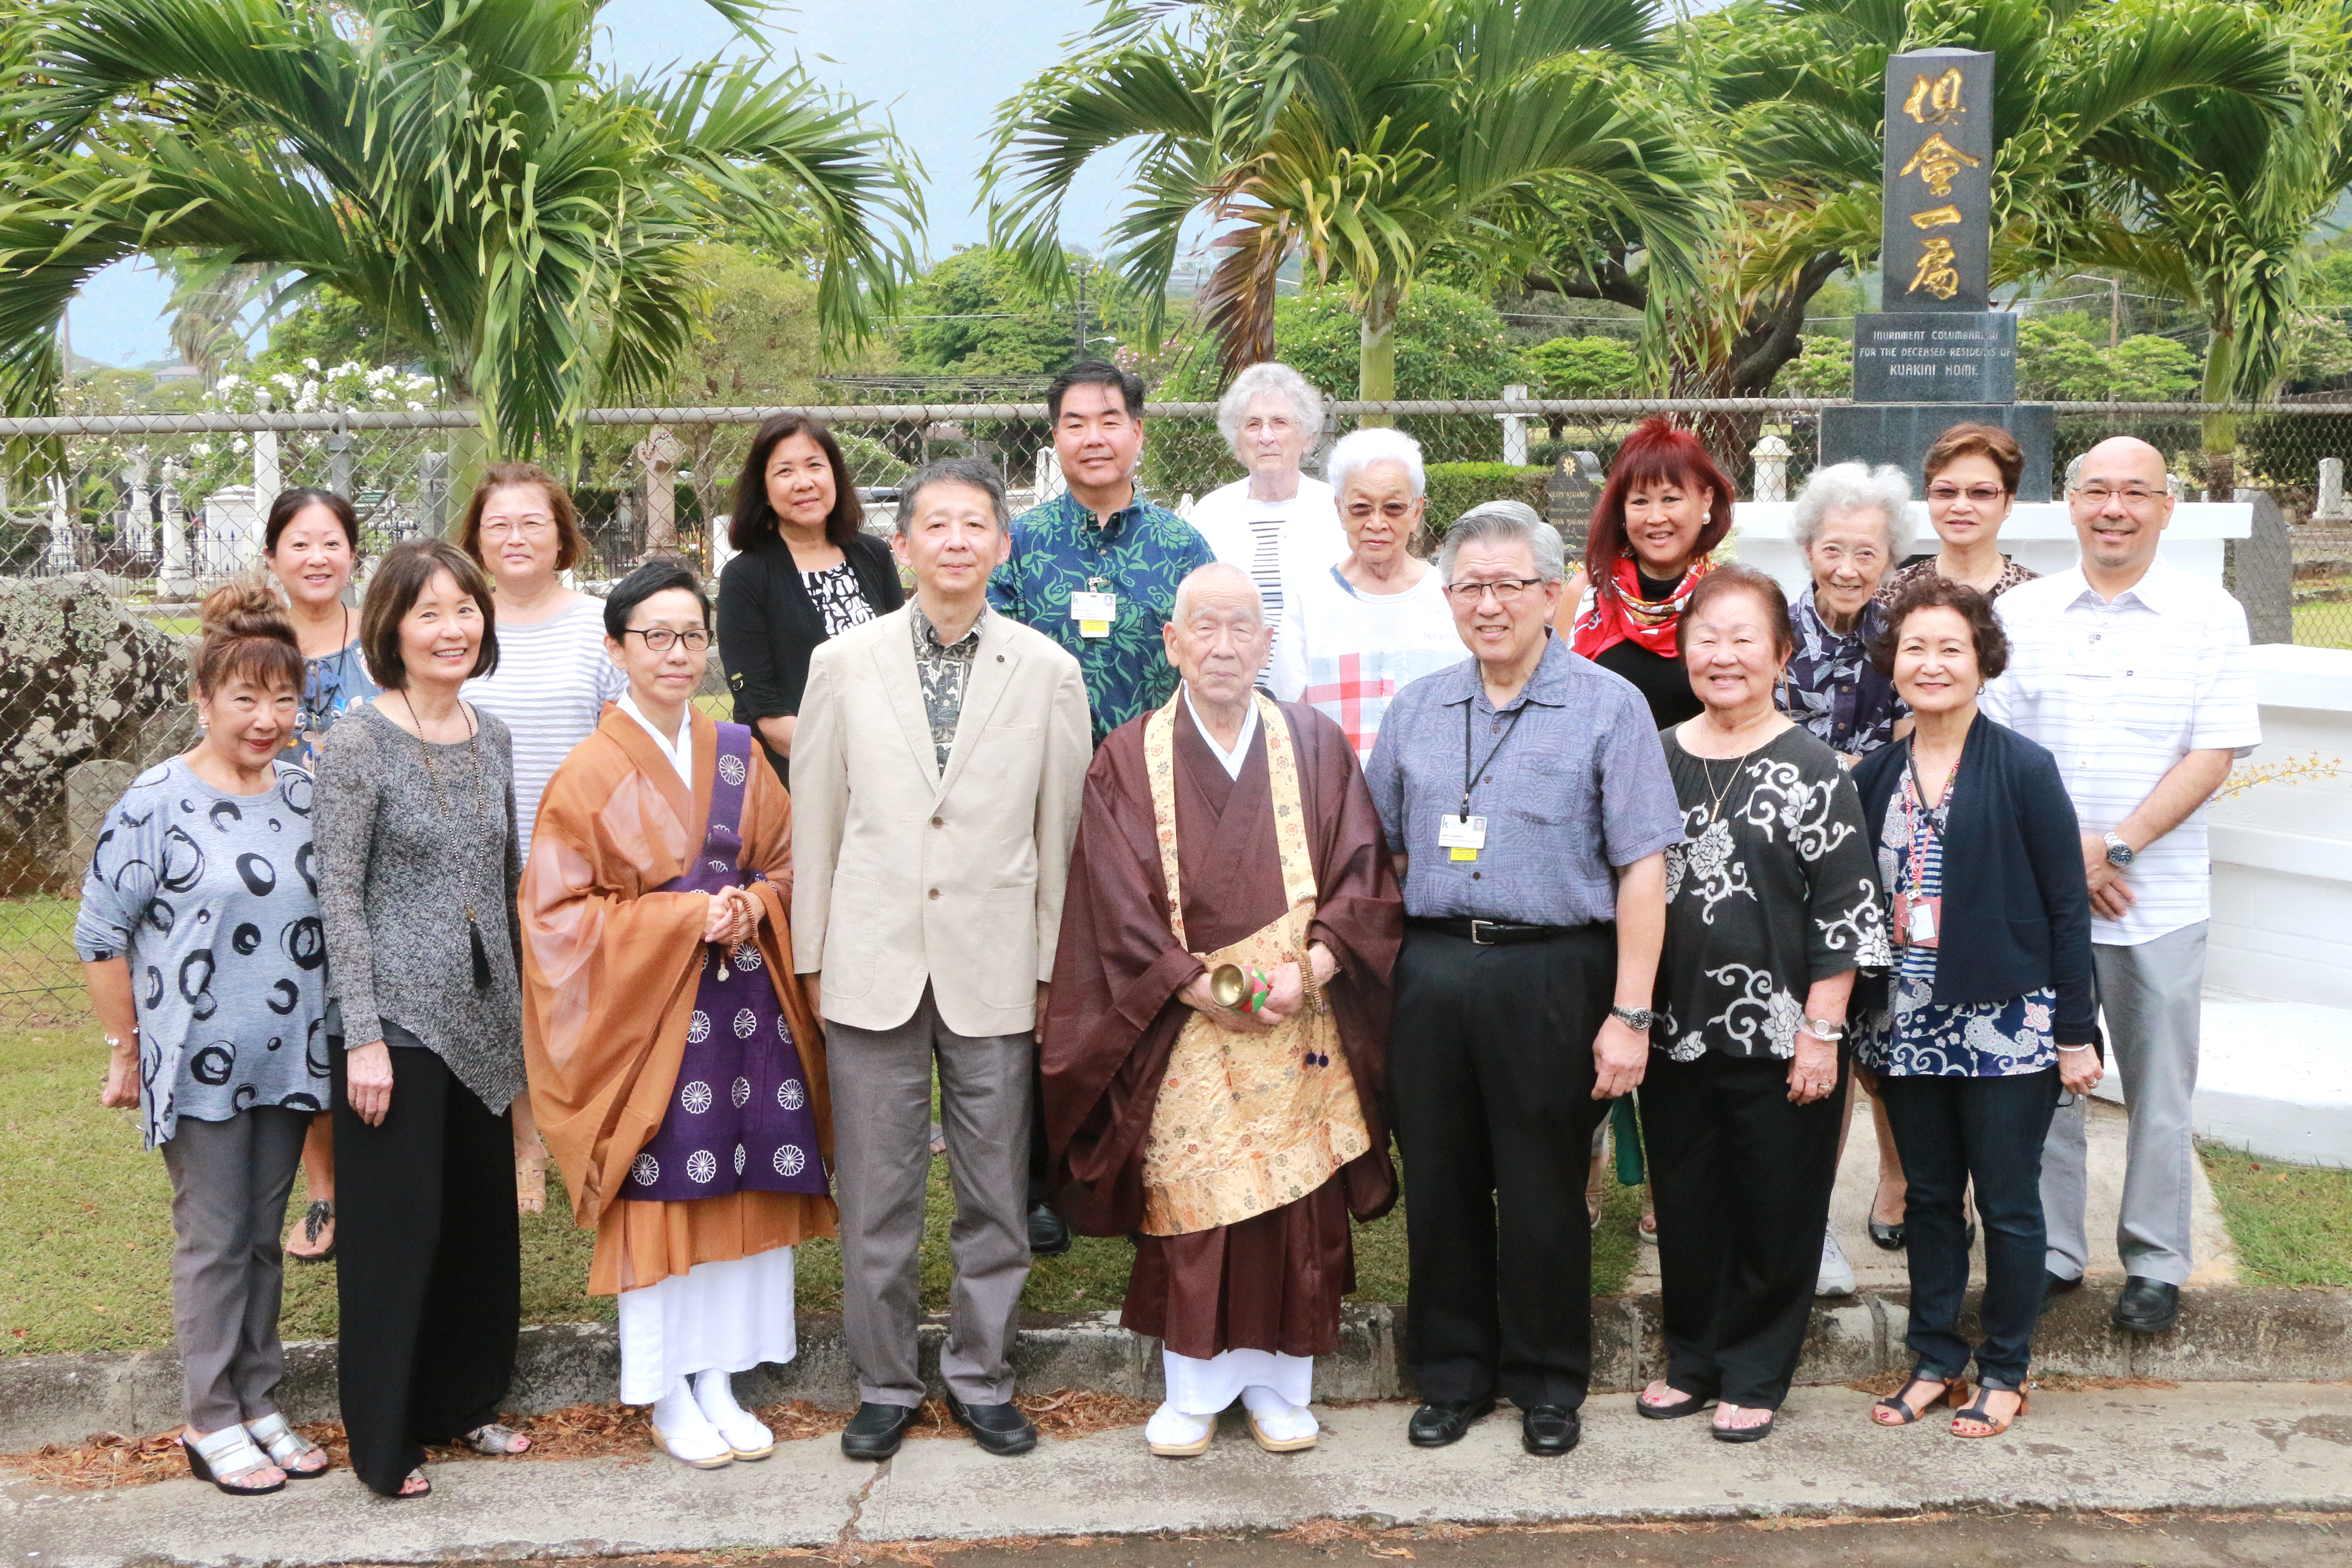 Members of the Kuakini Auxiliary, Kuakini Health System administration and Tendai Mission in front of the Kuakini columbarium following the May 29 memorial ceremony. Front row, from left: Memorial Project Committee chair Jinny Okubo; Kuakini Auxiliary president Karen Kuraoka; Rev. Ryodo Ishida of Tendai Mission; Alex Murata, president of the Tendai Mission support organization Ichigu Kai; Rev. Bishop Ryokan Ara of Tendai Mission; Gary Kajiwara, Kuakini president and CEO; Nancy Shimamoto with the Kuakini Auxiliary; and Suzette Lau-Hee from Kuakini Home. (Photo courtesy Kuakini Health System)